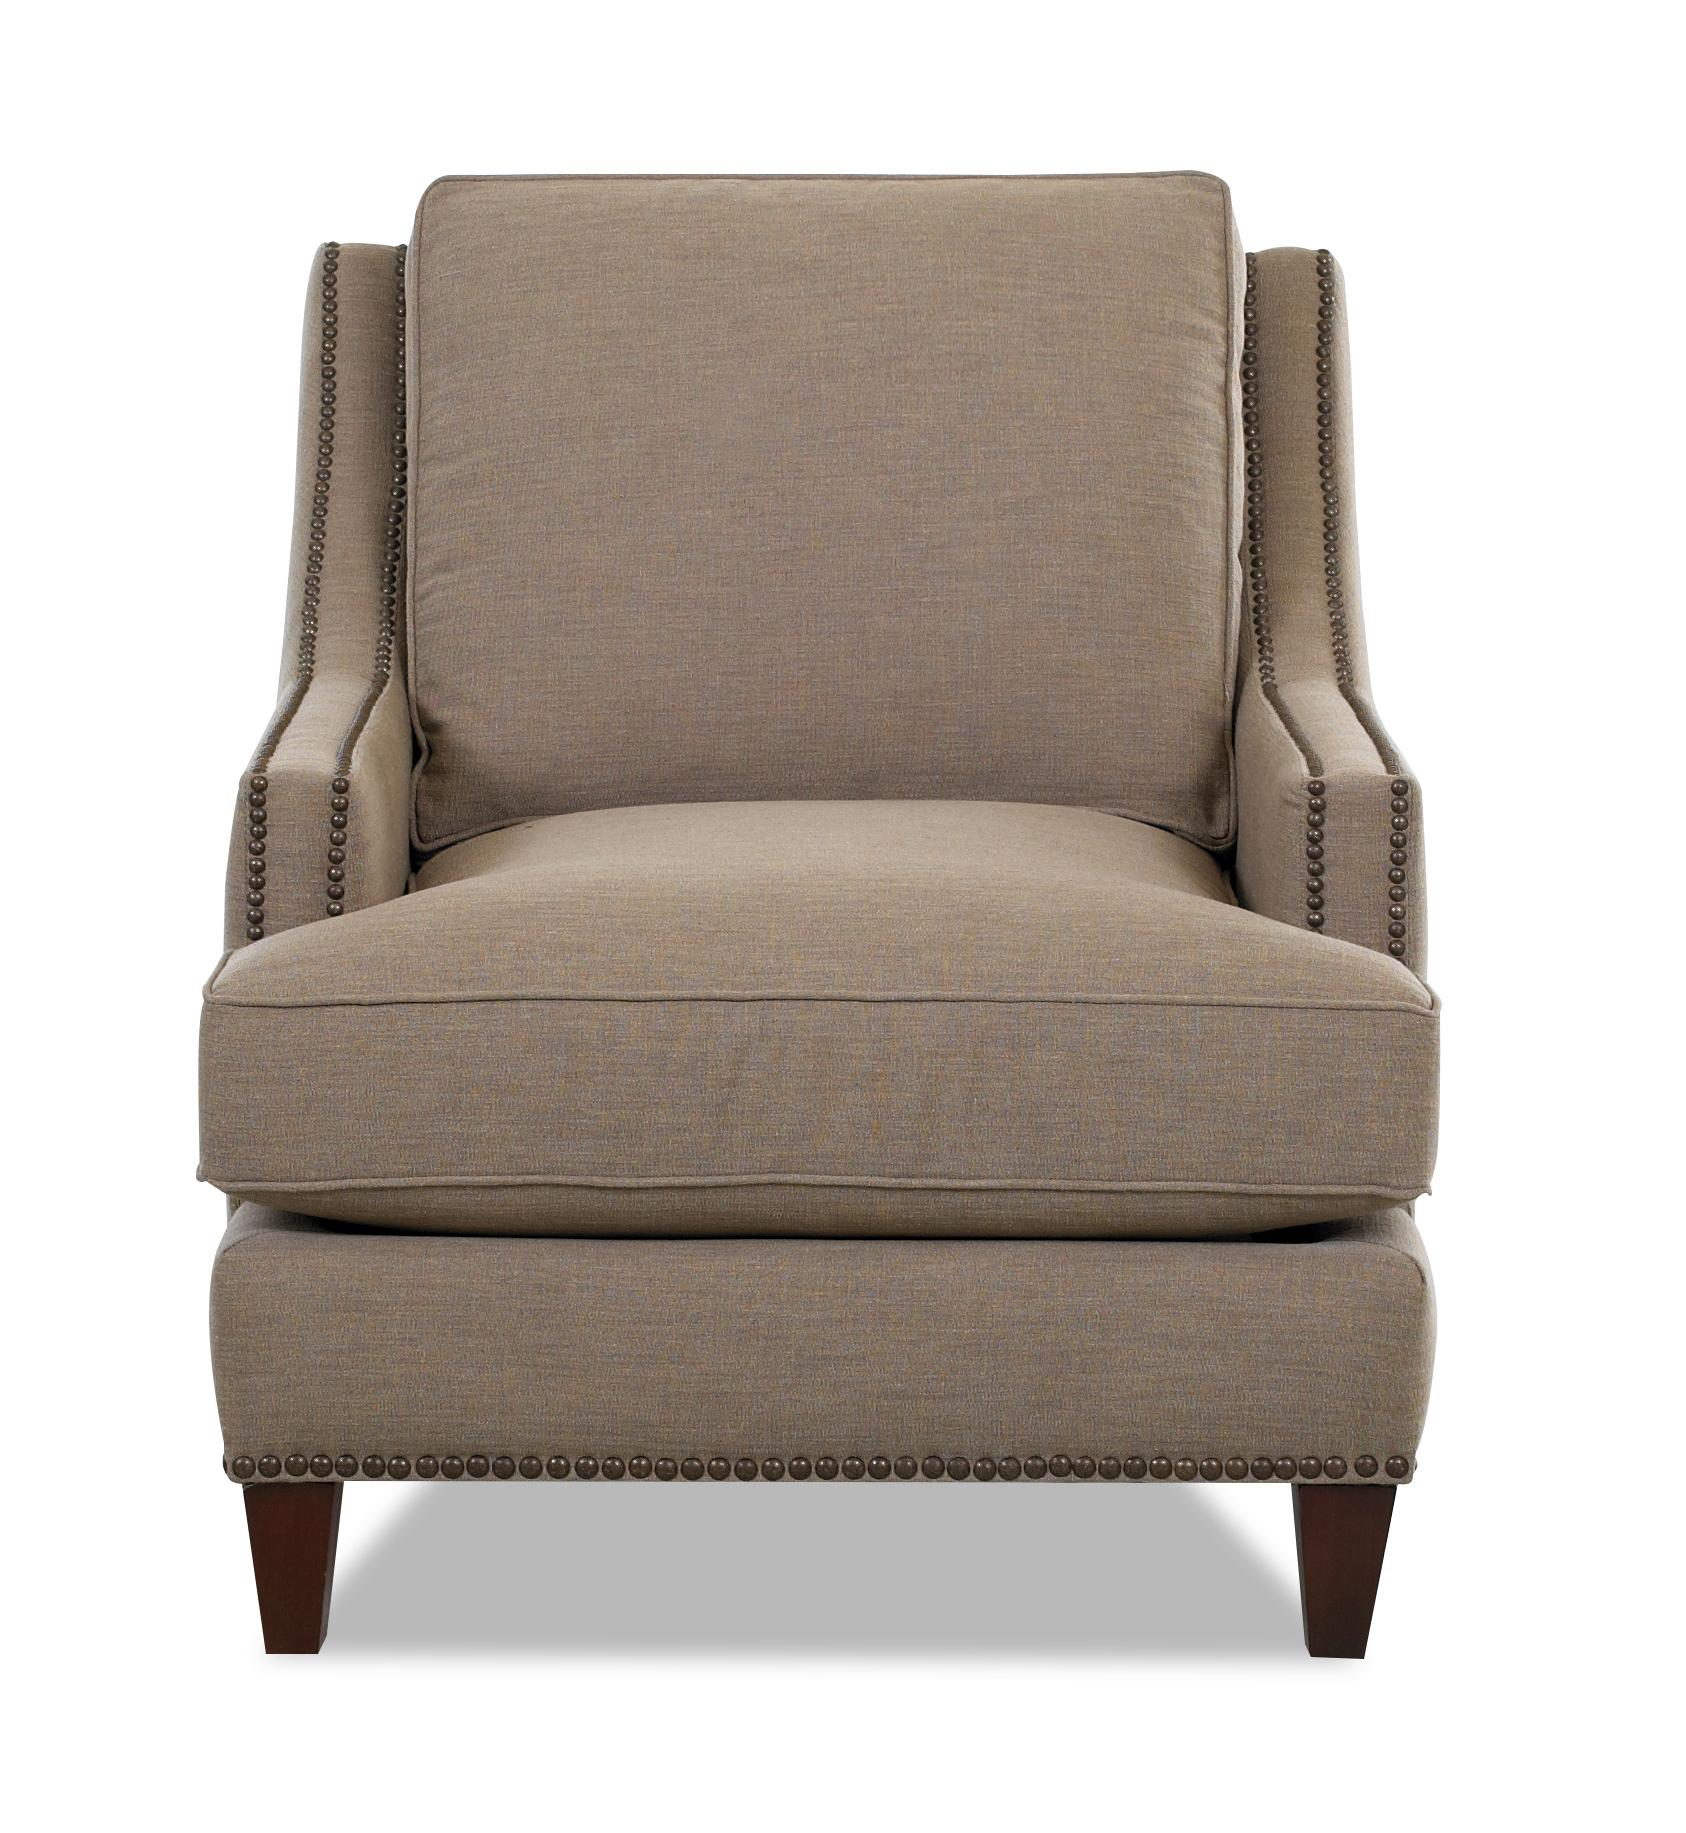 Incroyable Klaussner Duchess Transitional Nailhead Wing Back Chair With Blend Down  Cushions   AHFA   Upholstered Chair Dealer Locator